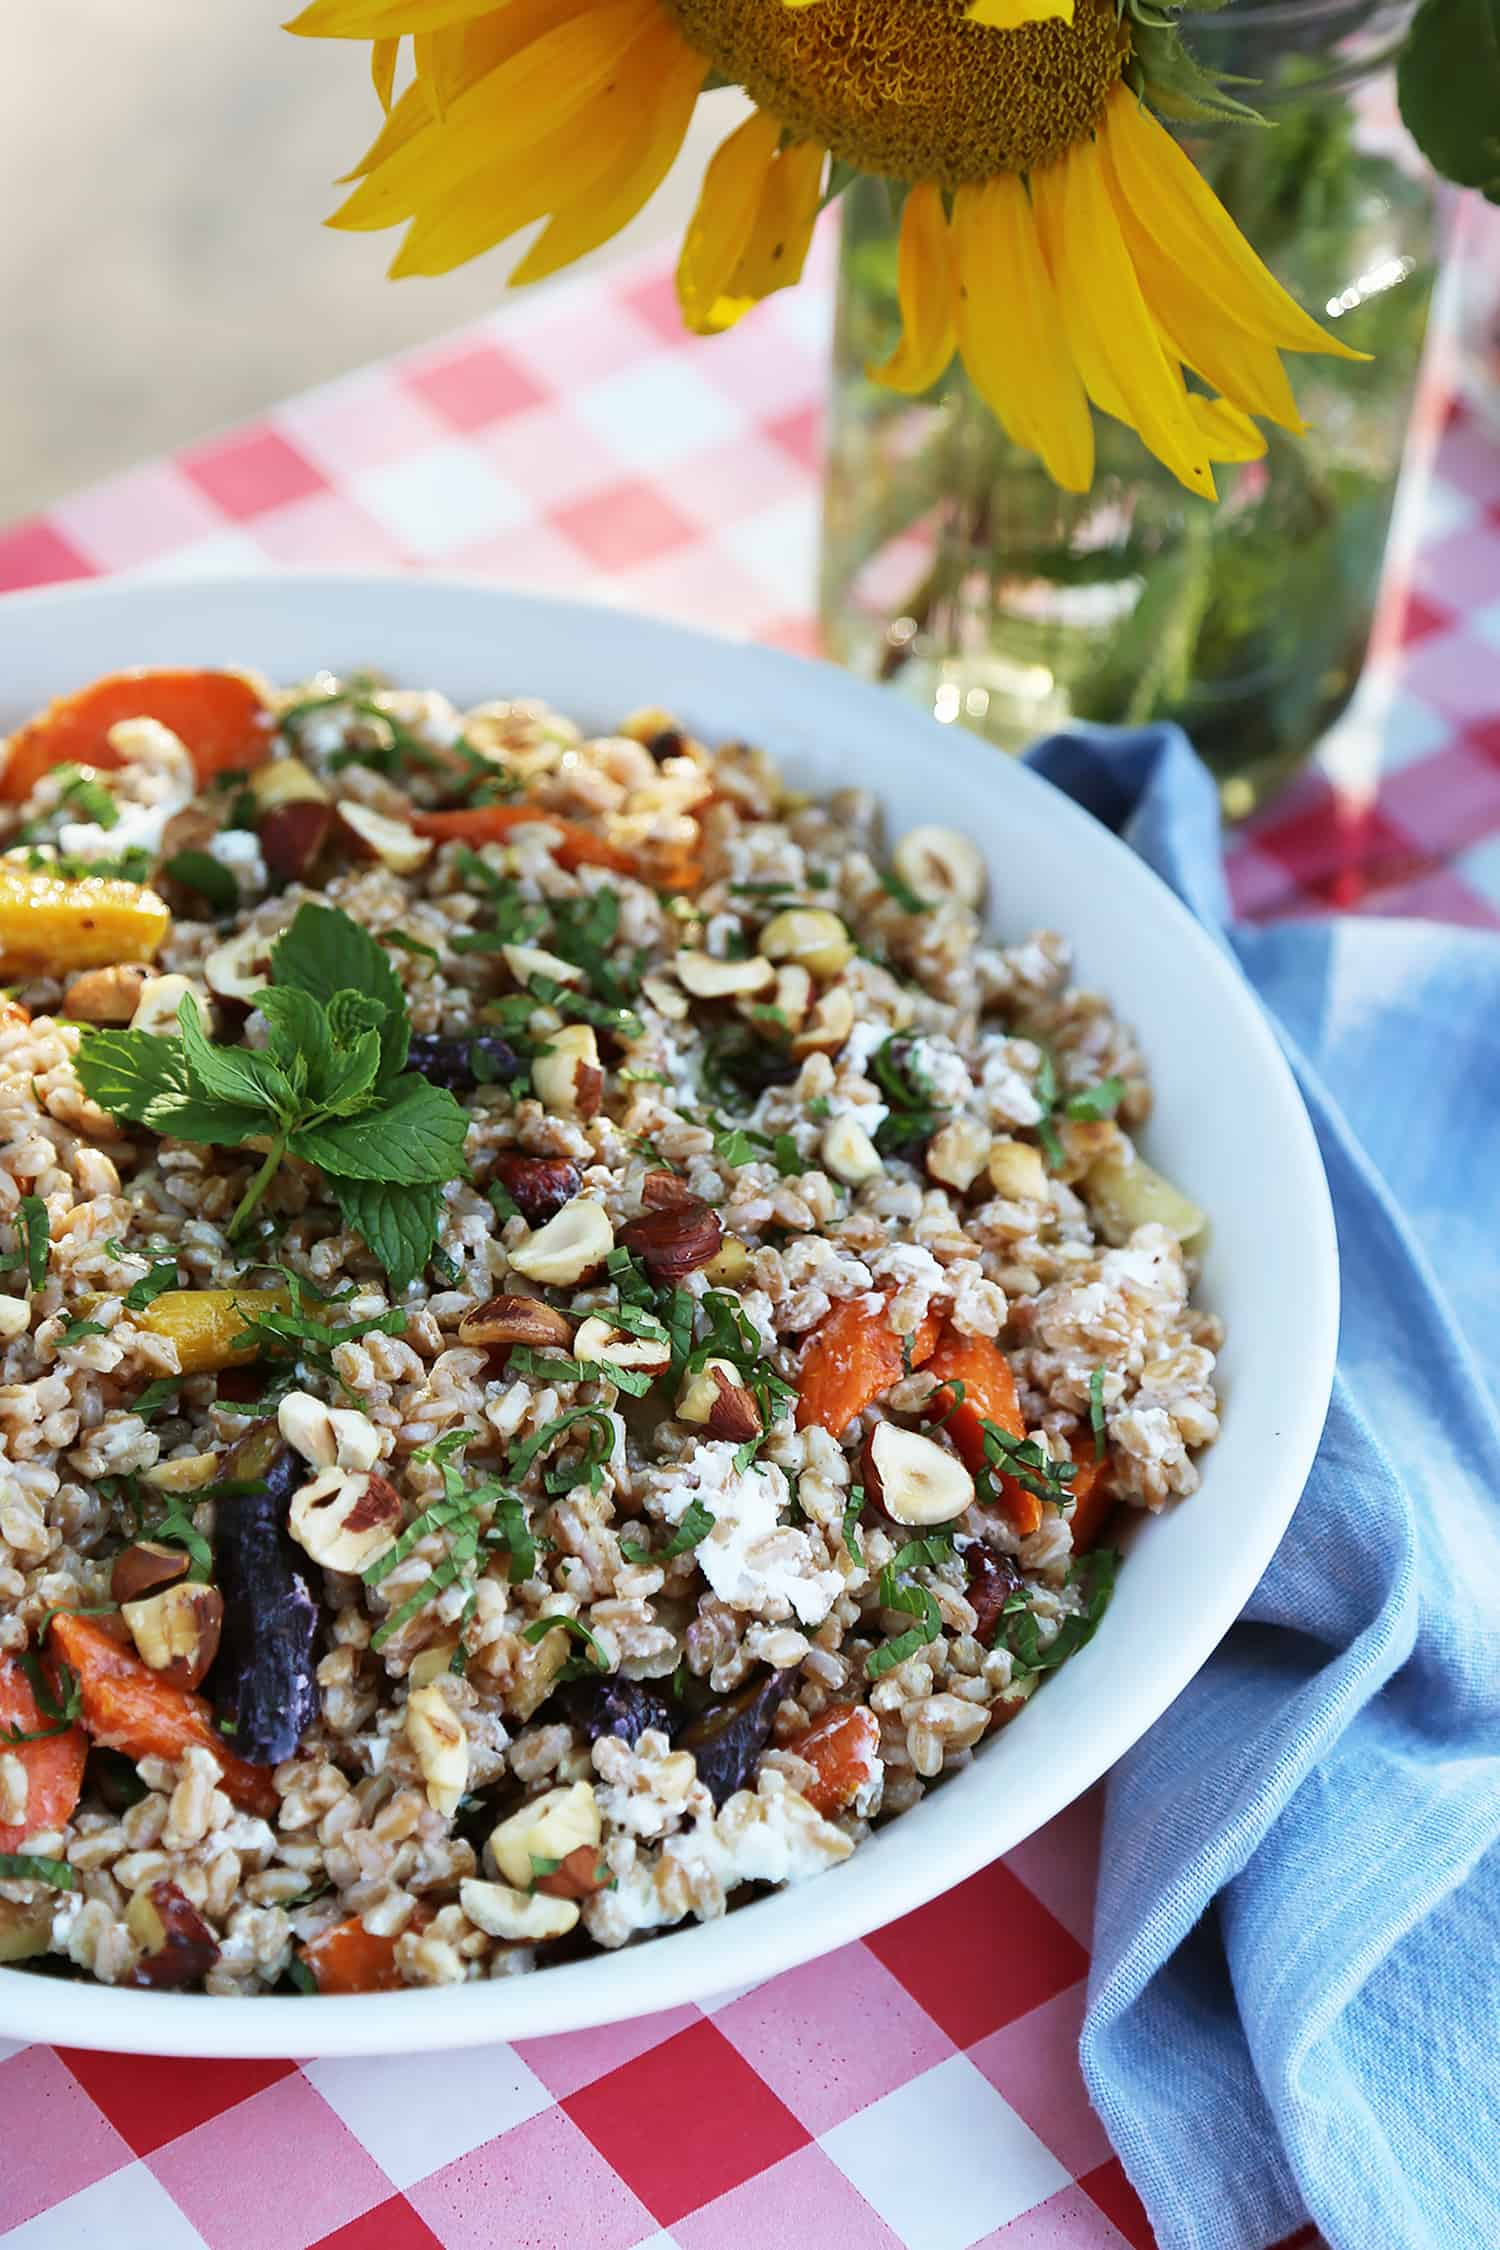 Farro with Roasted Carrots, Hazelnuts & Goat Cheese Recipe by Tiffani Thiessen